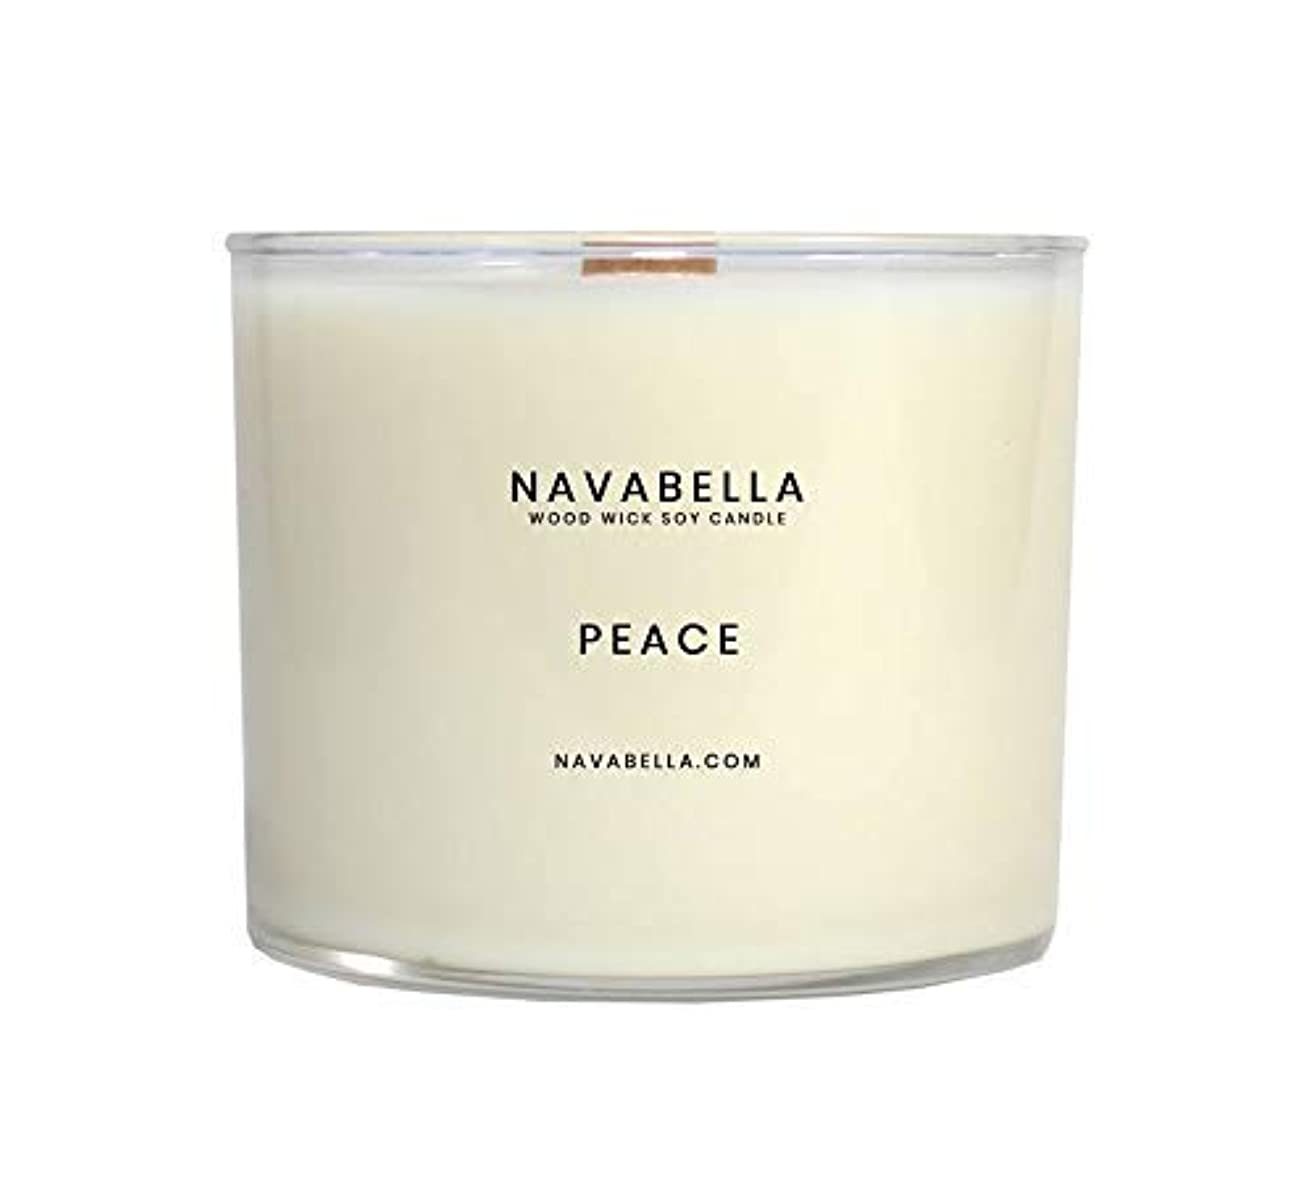 Black Tea 100% All-Natural Soy Candle, Up to 100 Hours of Peace Aromatherapy to Release Stress + Calm Your Mind, Handmade w/Essential Oils of Blk. Tea, Vetiver + Sandalwood, Wood Wicks, 17 Oz.